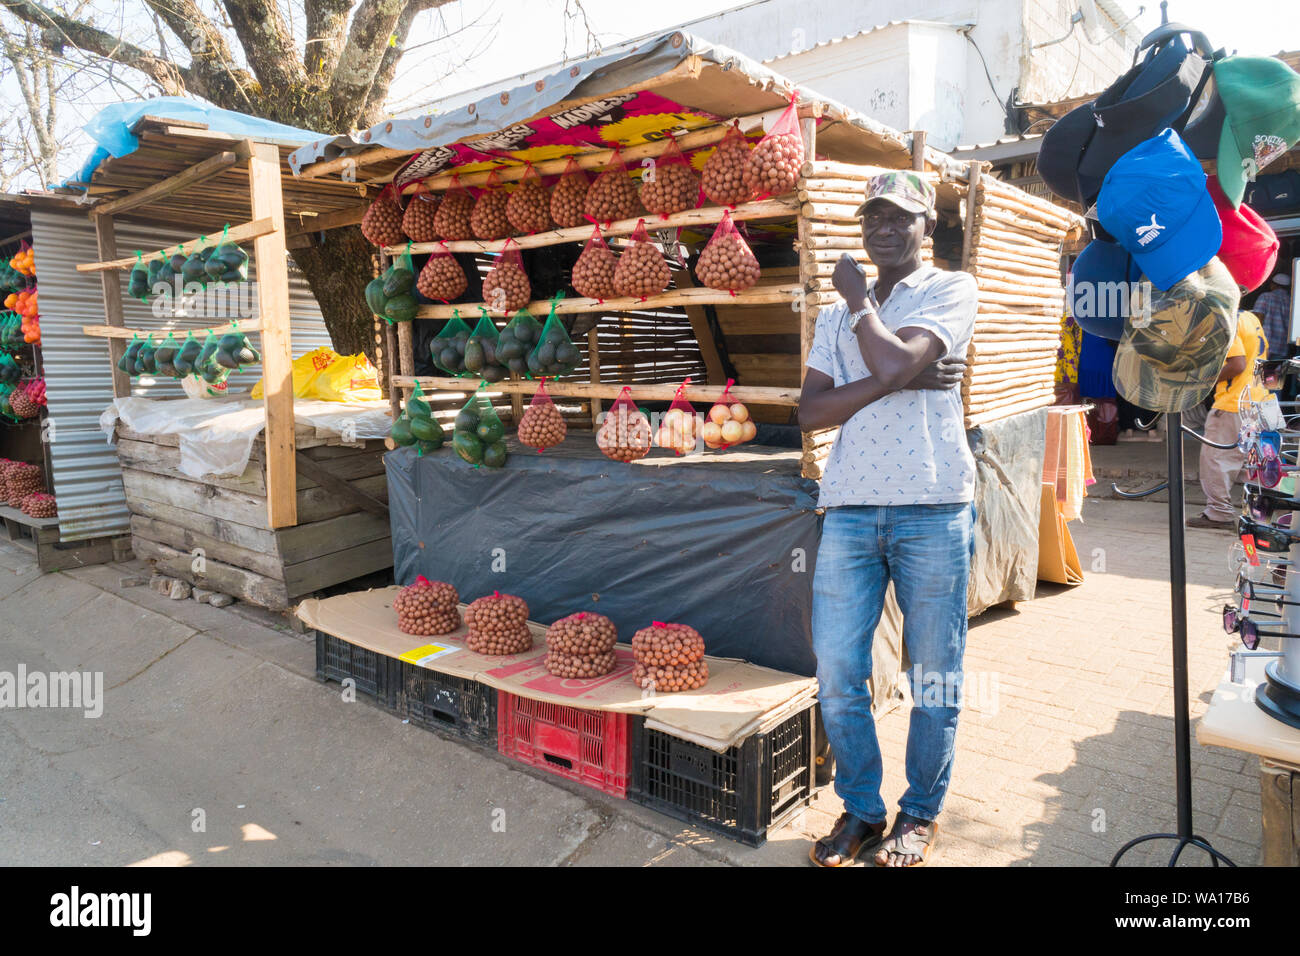 black African man street vendor stands at a fruit and vegetable stall which displays nuts, Avocado pears, onions in Graskop, Mpumalanga, South Africa Stock Photo